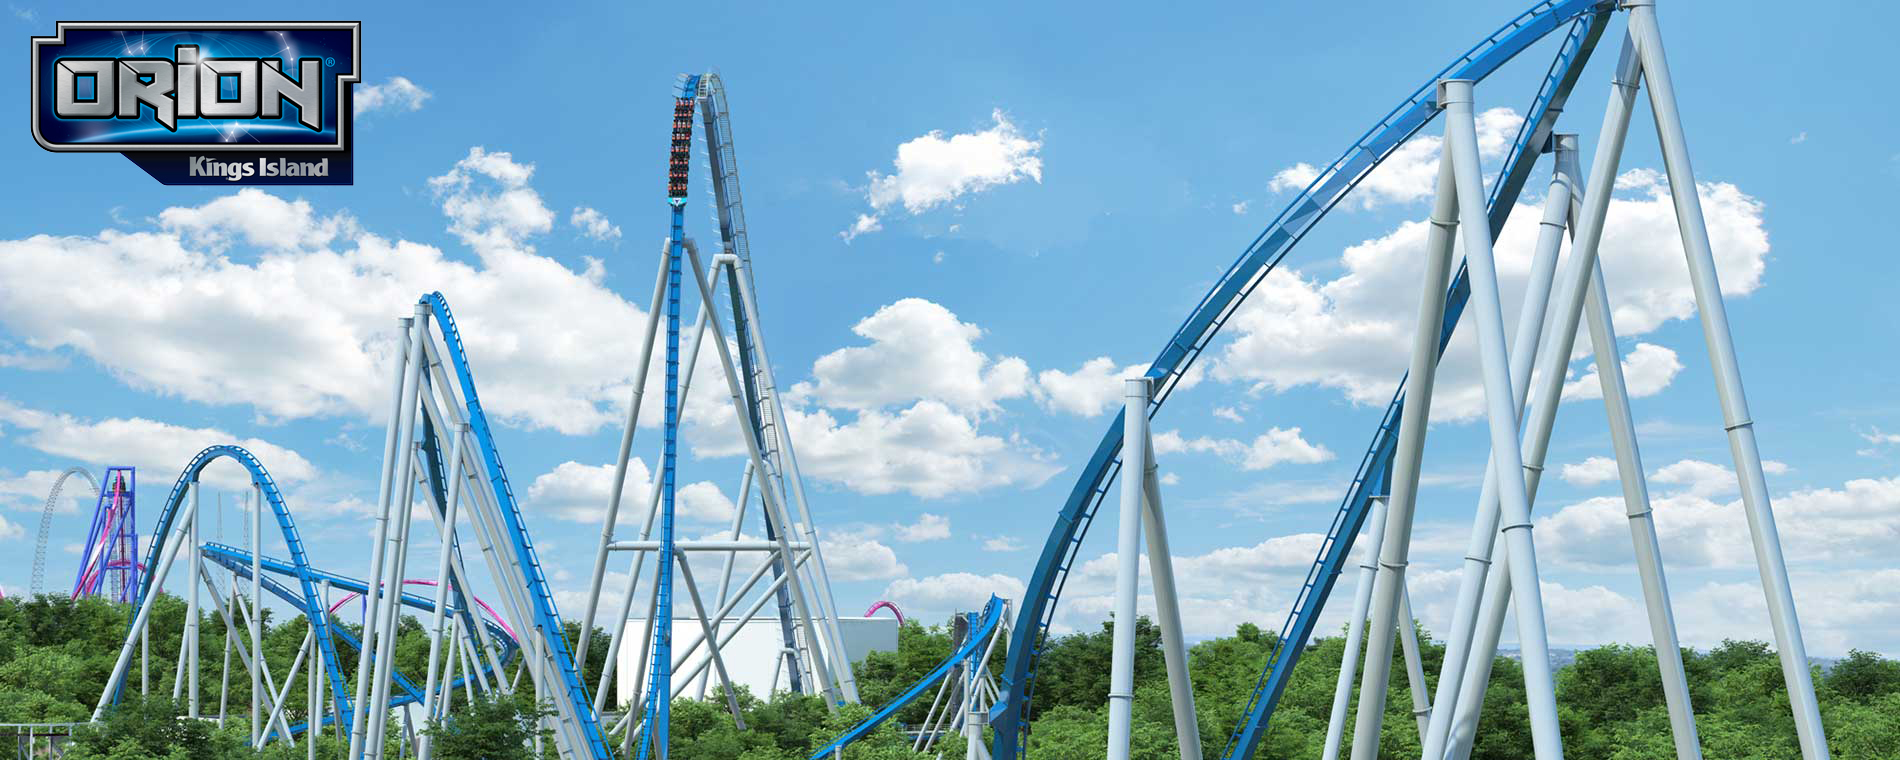 Kings Islands Announces Orion - Giga Coaster coming in 2020